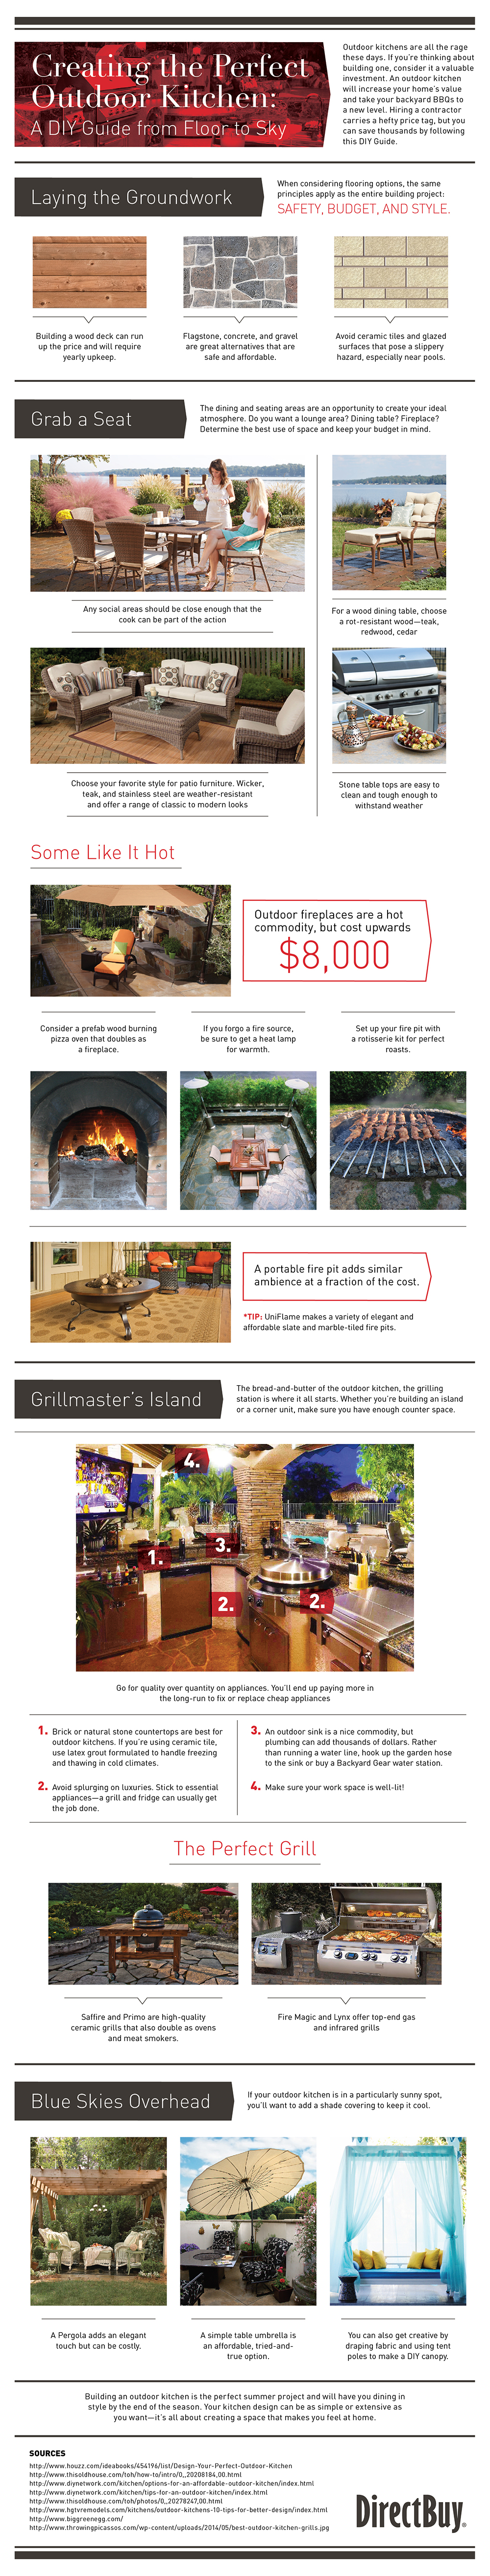 A to Z Guide for CReating the Perfect Outdoor Kitchen